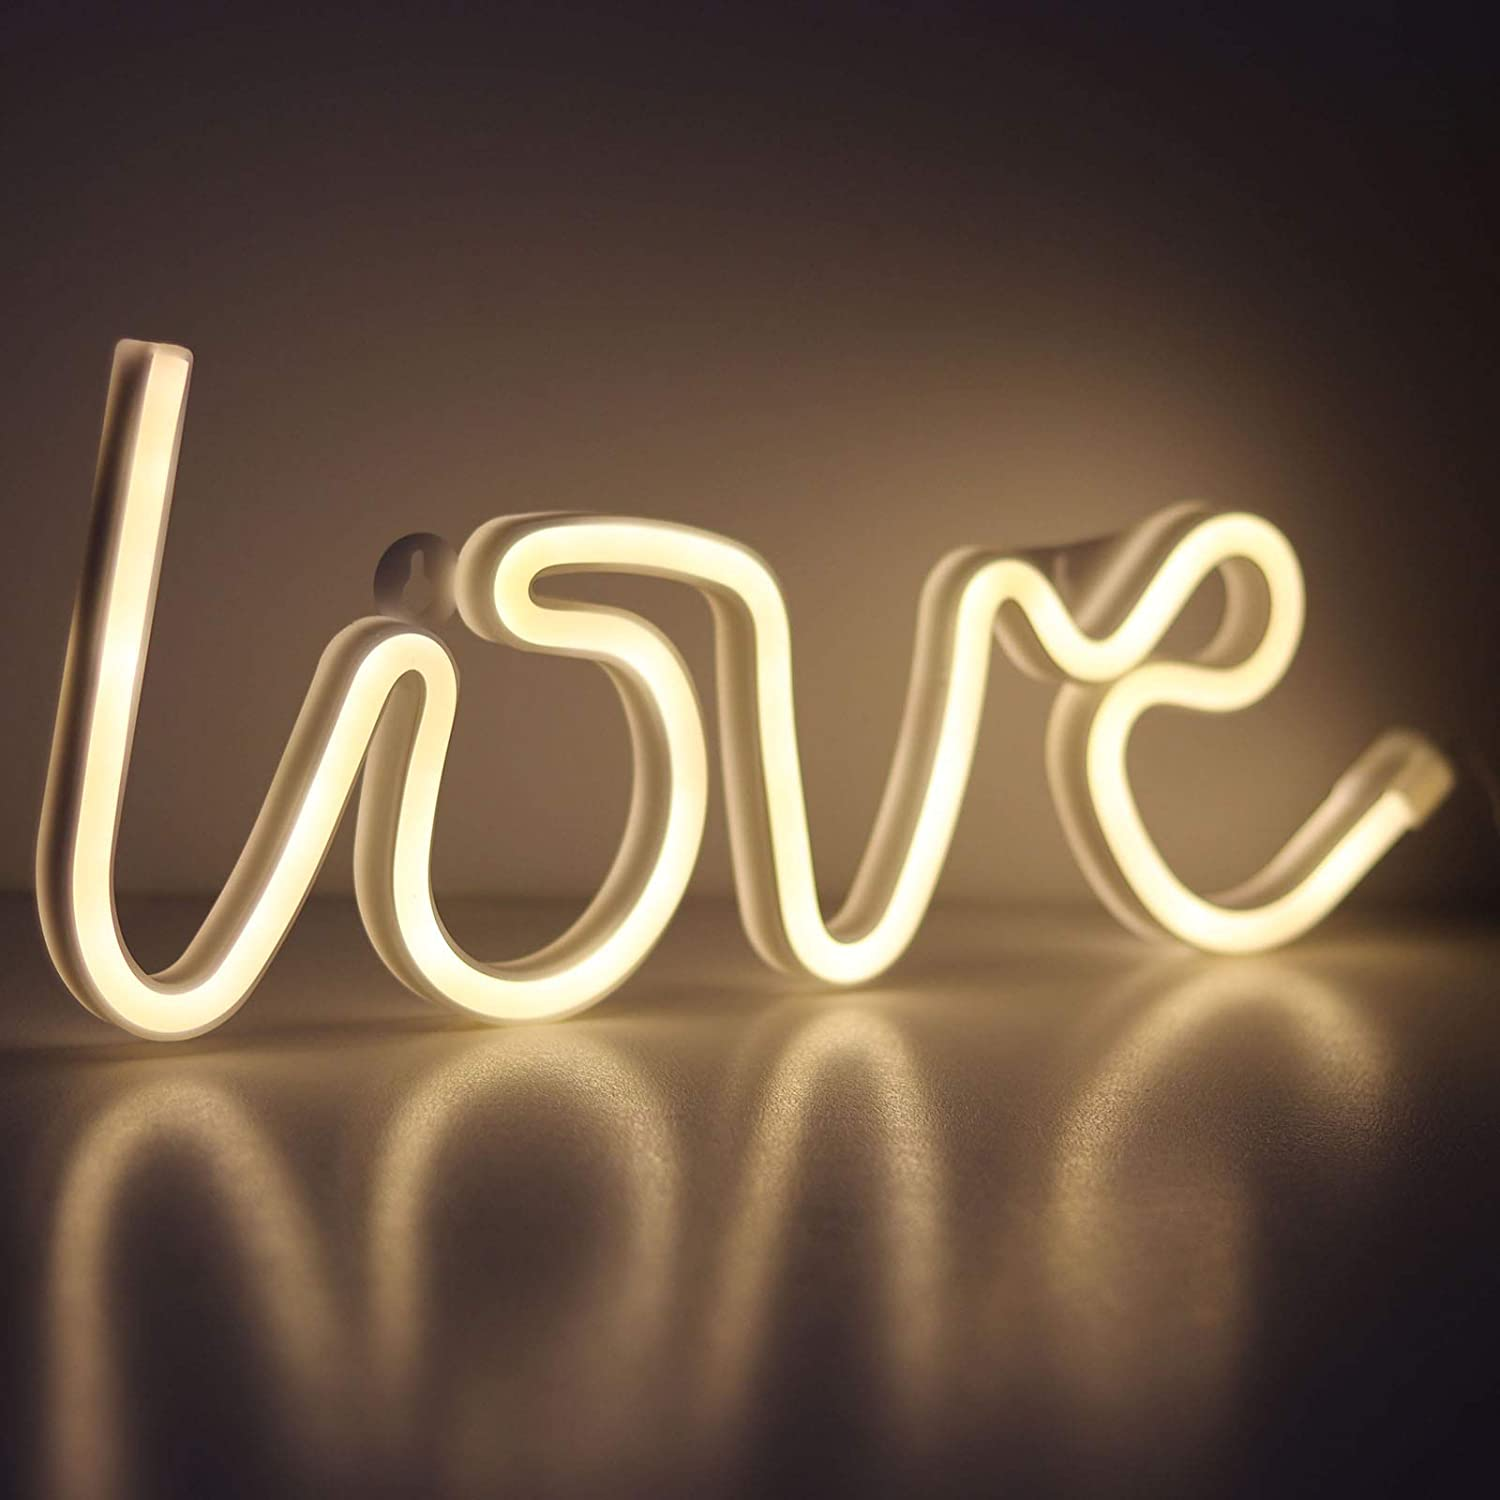 AIL Love Letter Blue LED Neon Sign Wedding Party Decoration USB /& Battery Powered Aesthetic Night Lights Wall Art Neon Lamps for Girls Bedroom,Dorm,Bar,Valentines Day Birthday Gifts